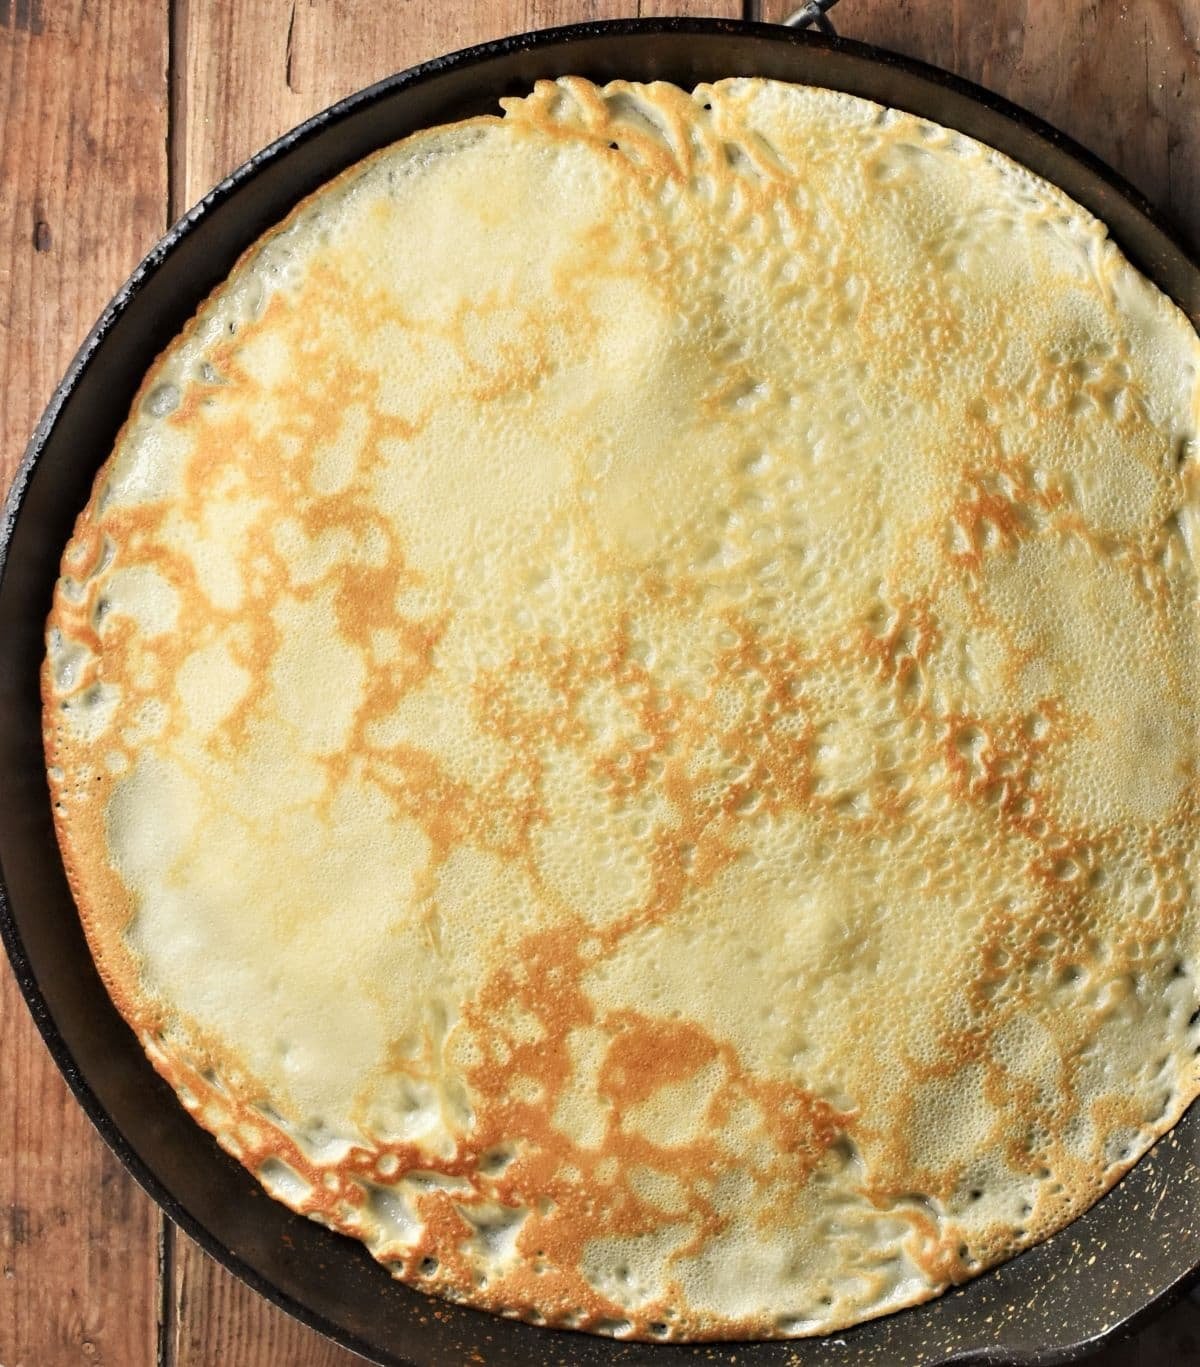 Large crepe on top of frying pan.